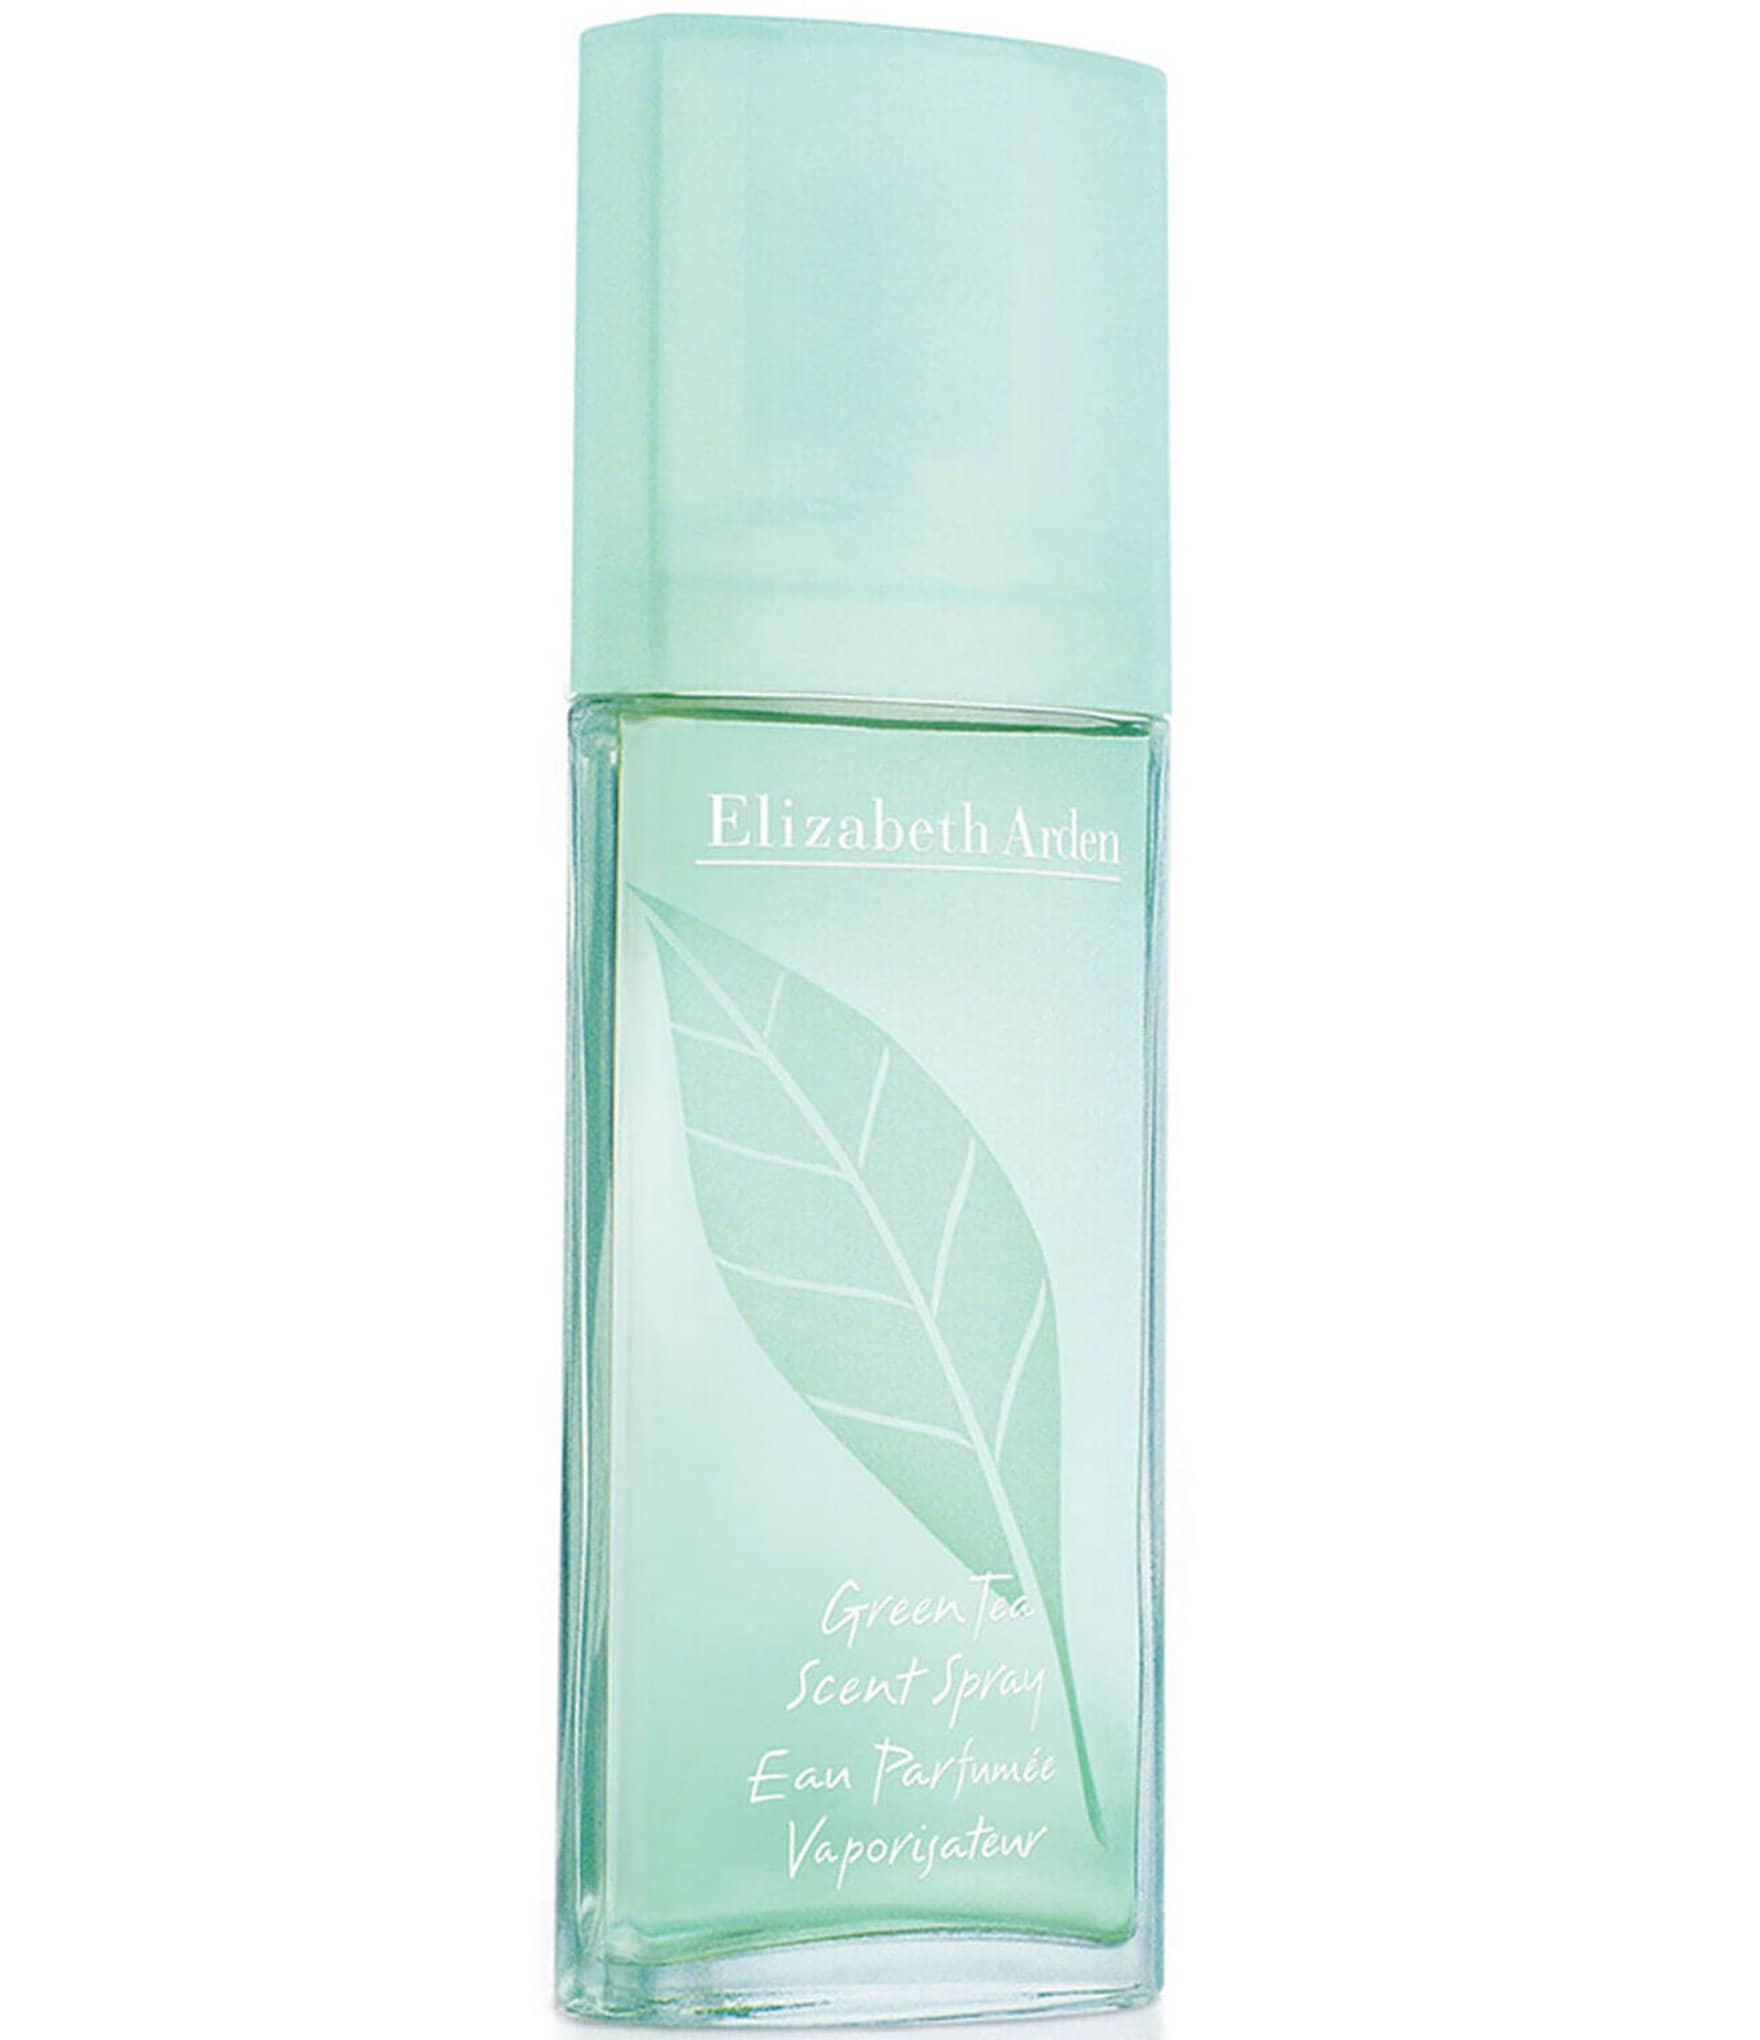 Elizabeth Arden Green Tea Scent Spray | Dillard's